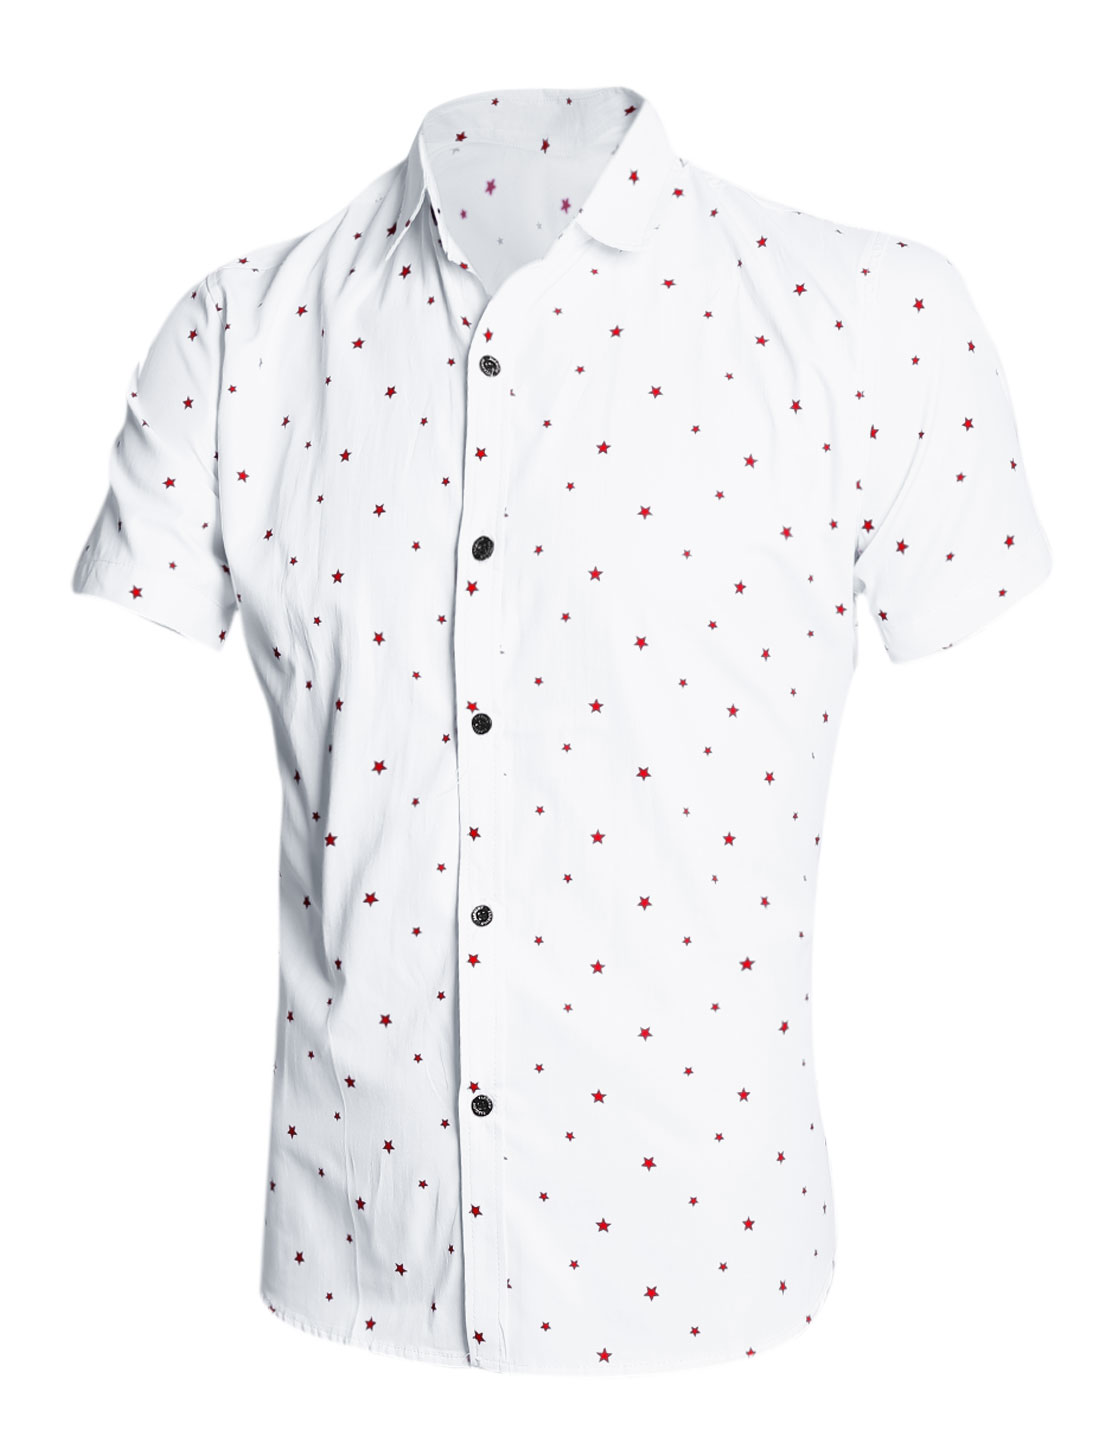 Man Short Sleeves Star Prints Button Down Shirt Red White M